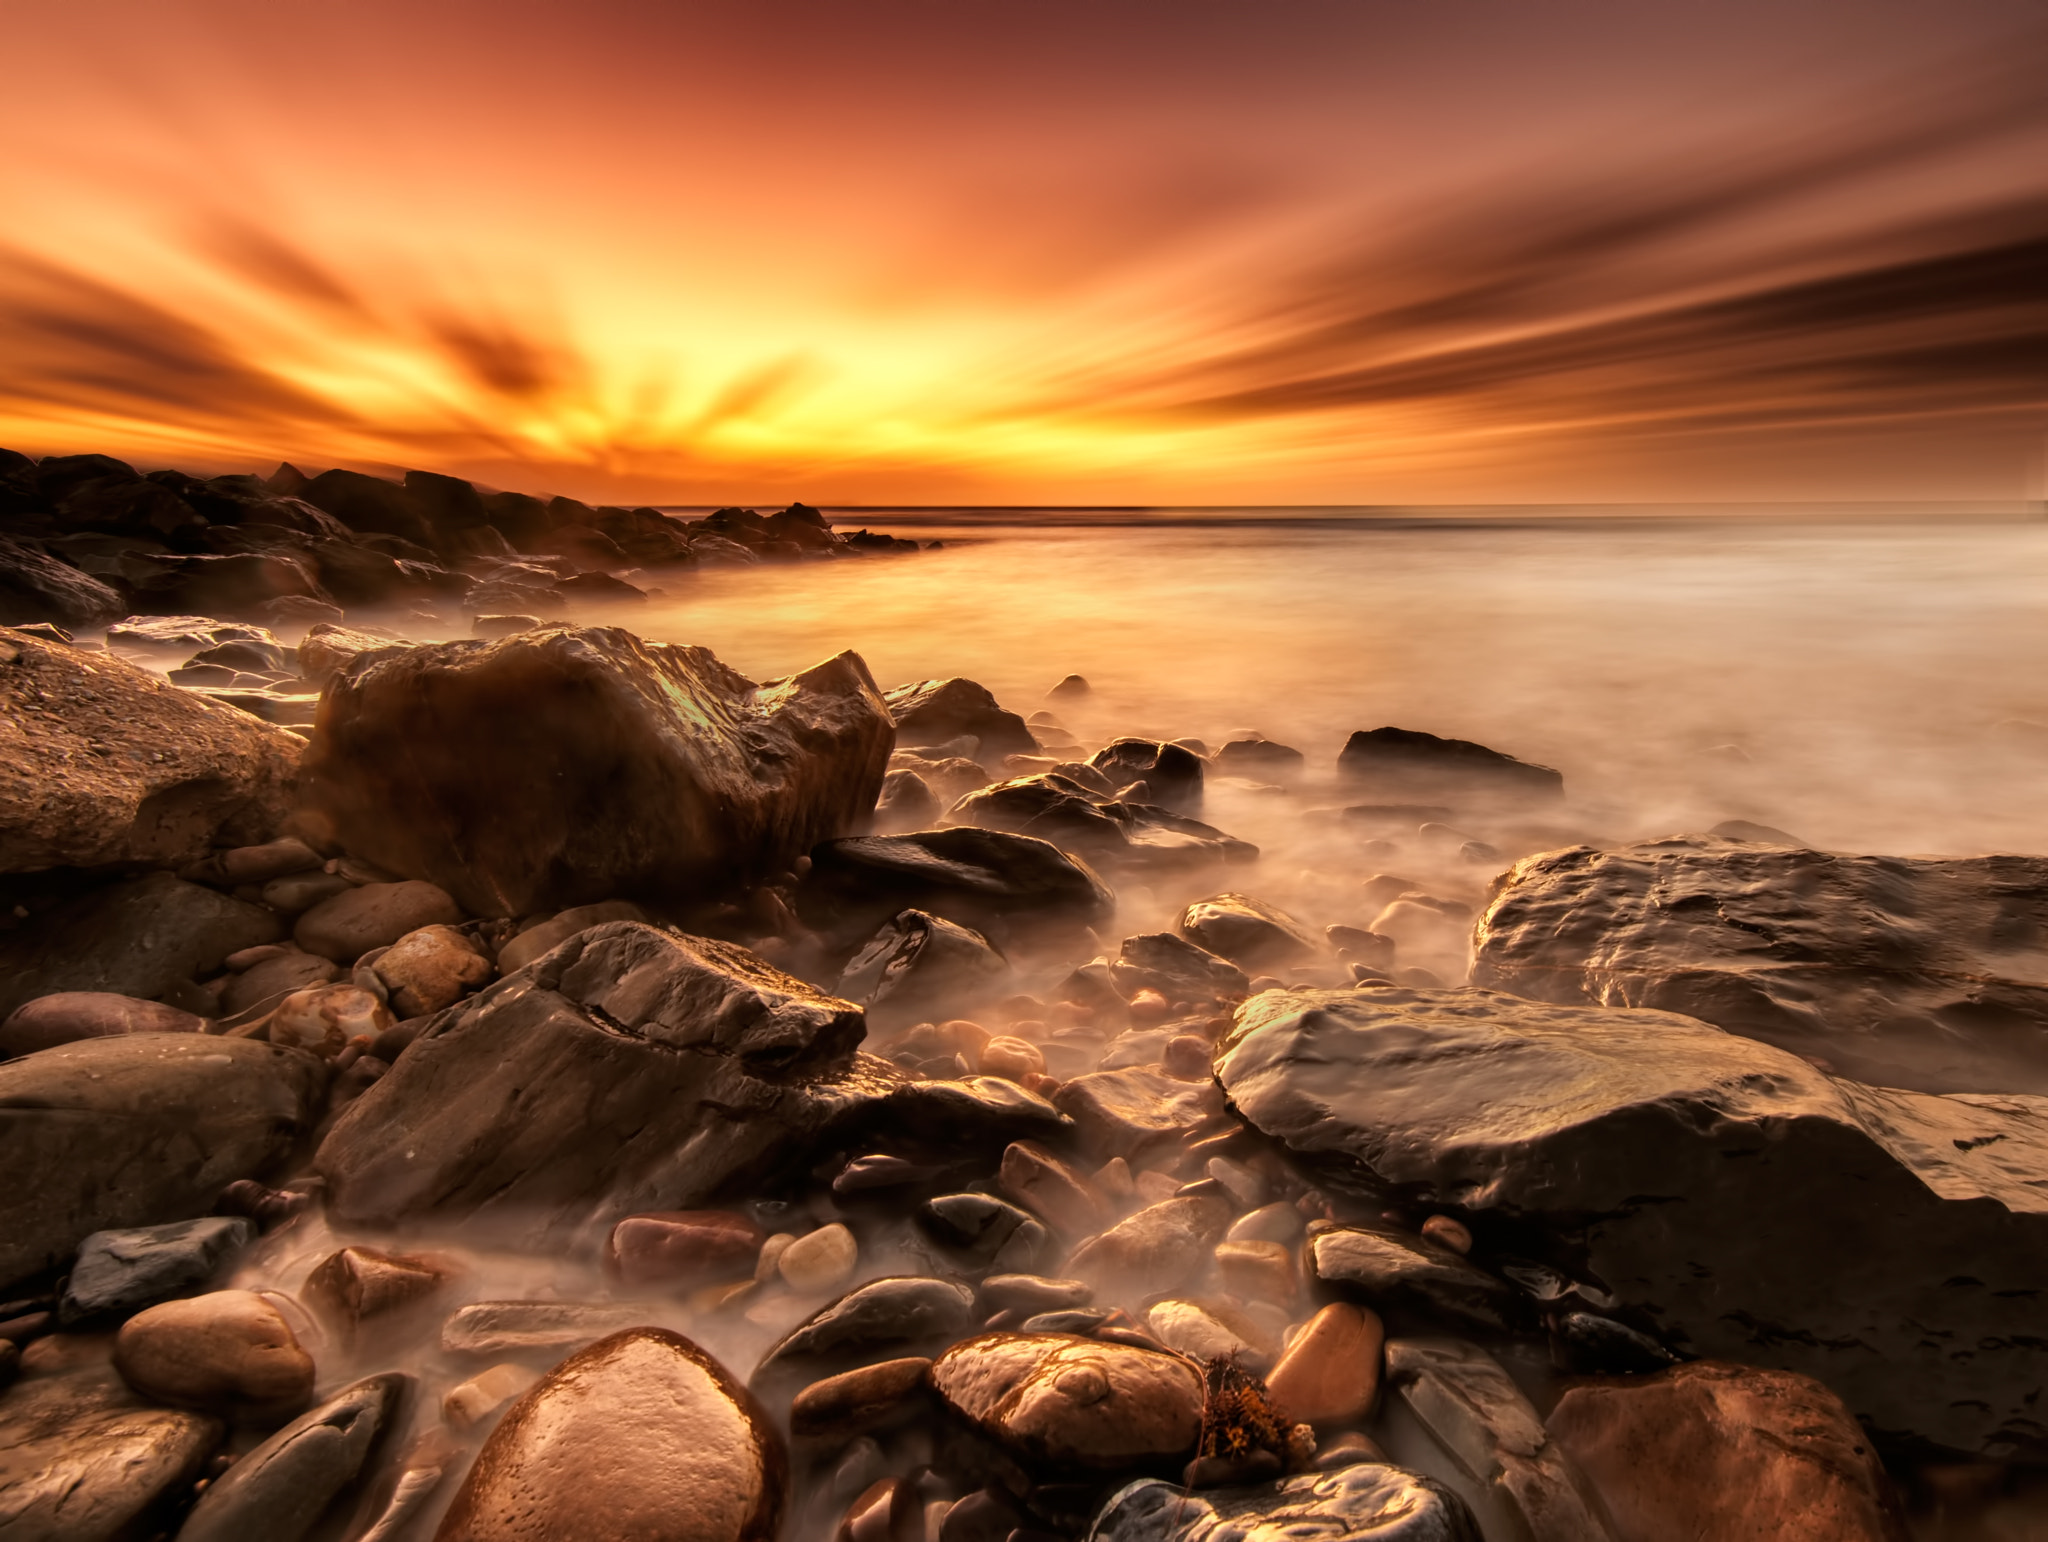 Photograph Let there Be Ligh by Bipphy Kath on 500px